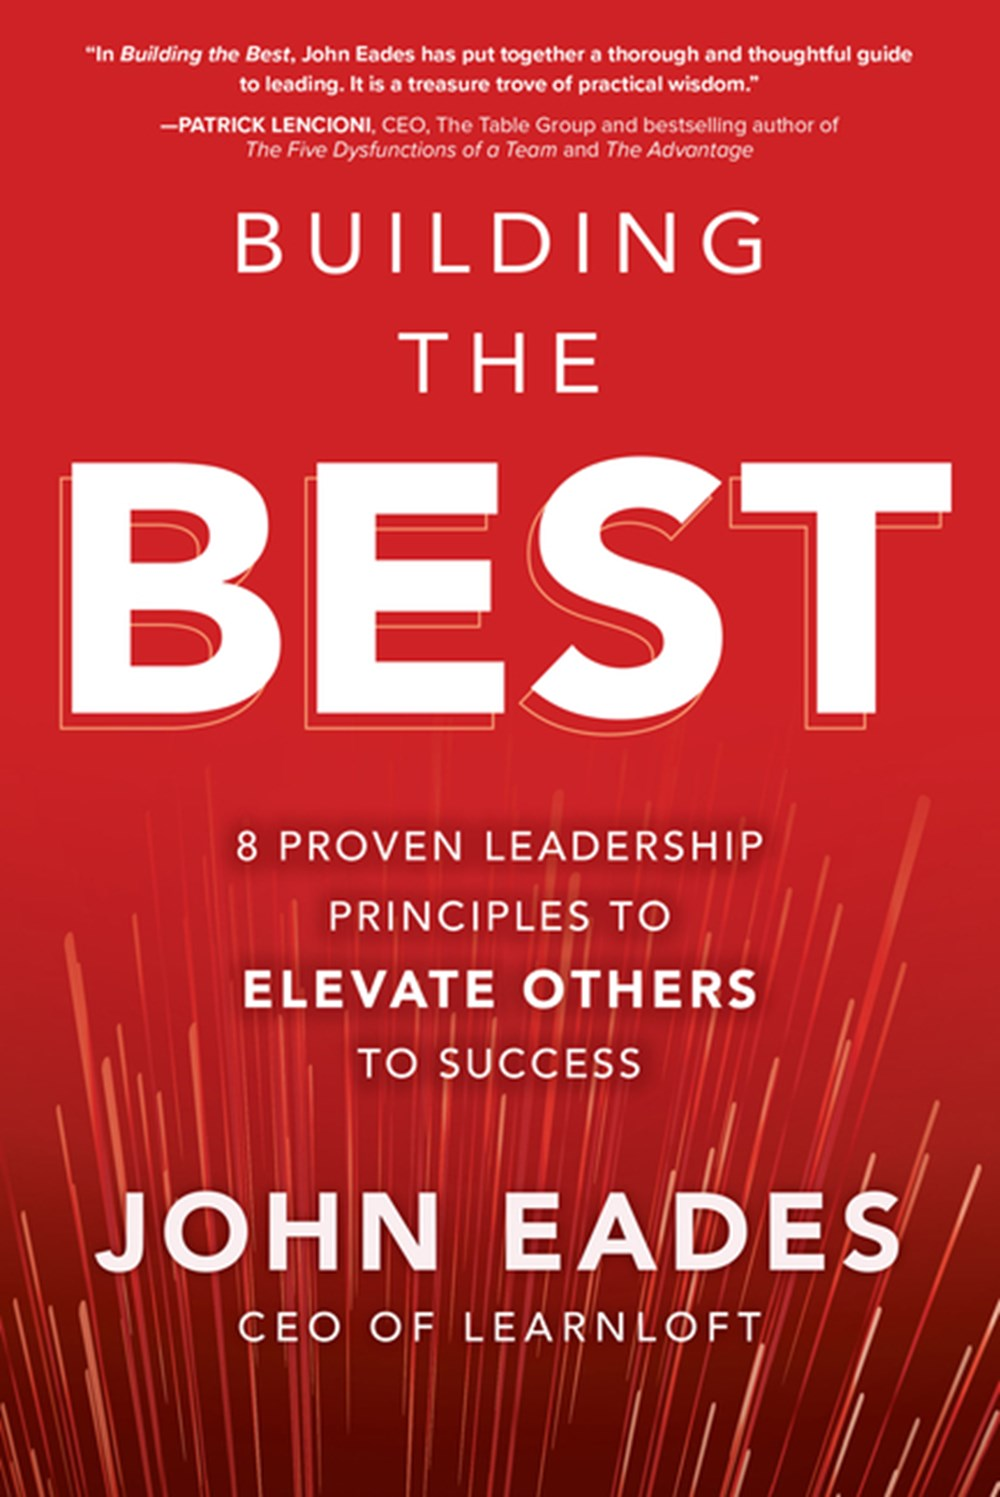 Building the Best 8 Proven Leadership Principles to Elevate Others to Success